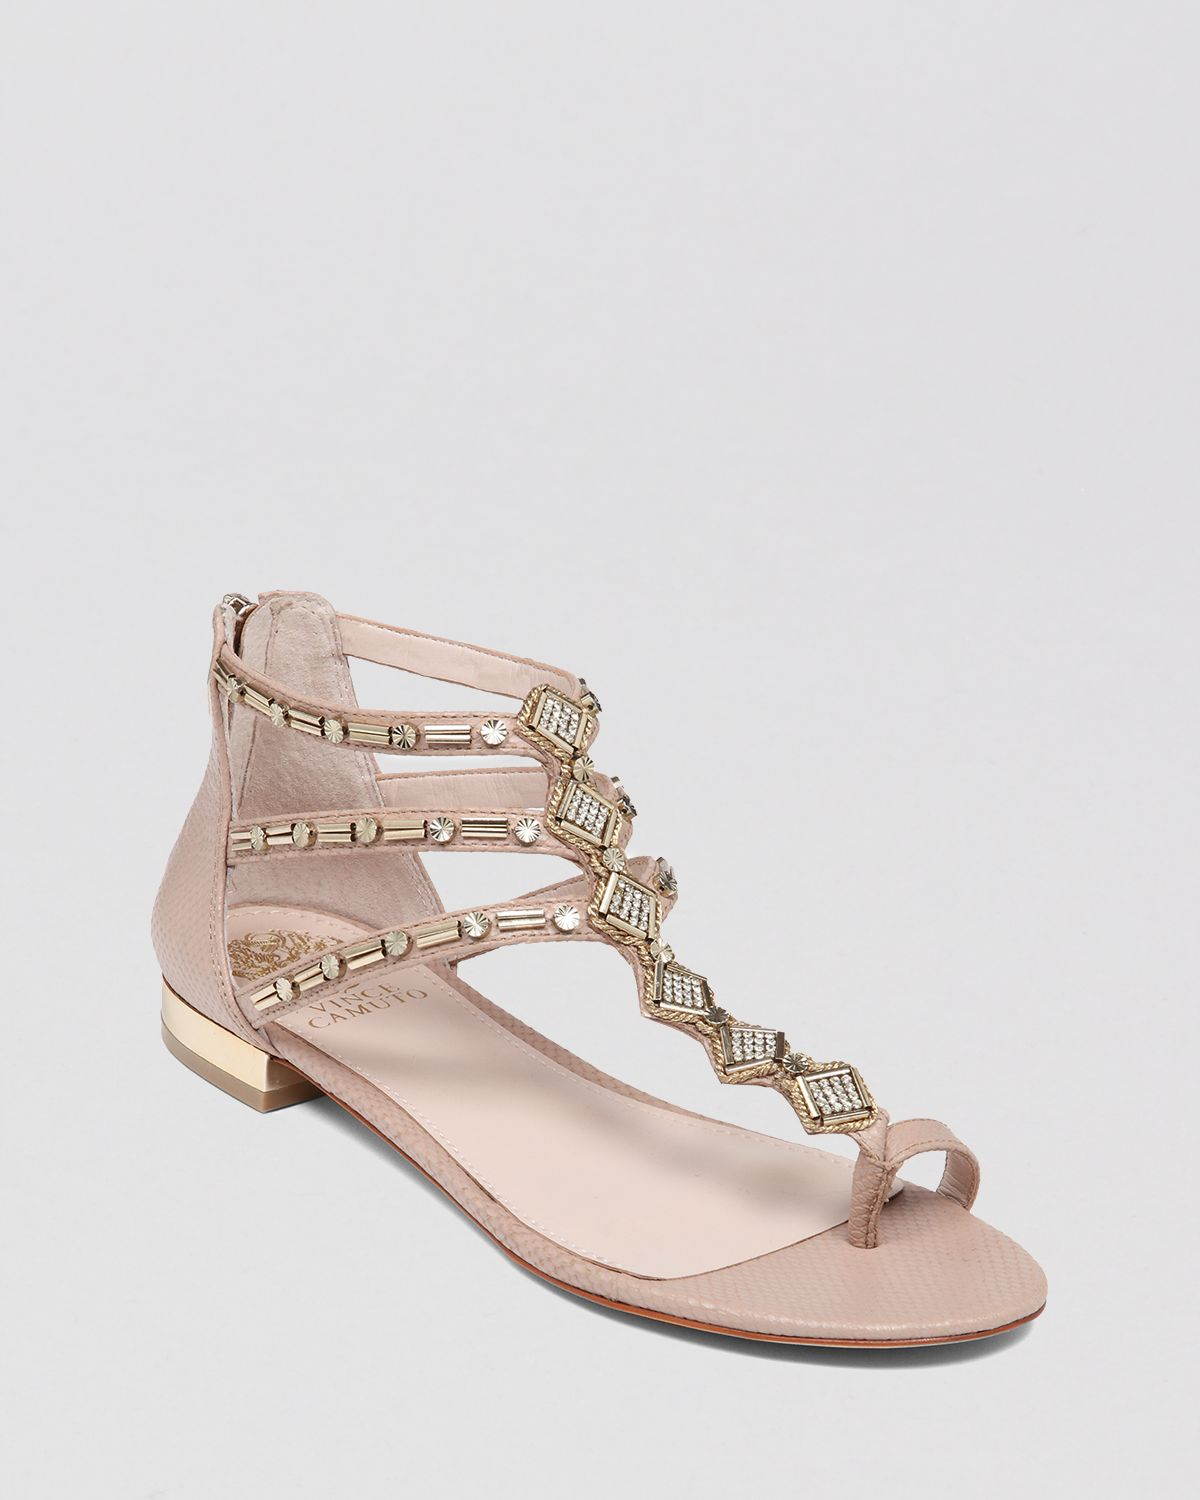 Vince Camuto Flat Sandals Hanelli In Metallic Lyst